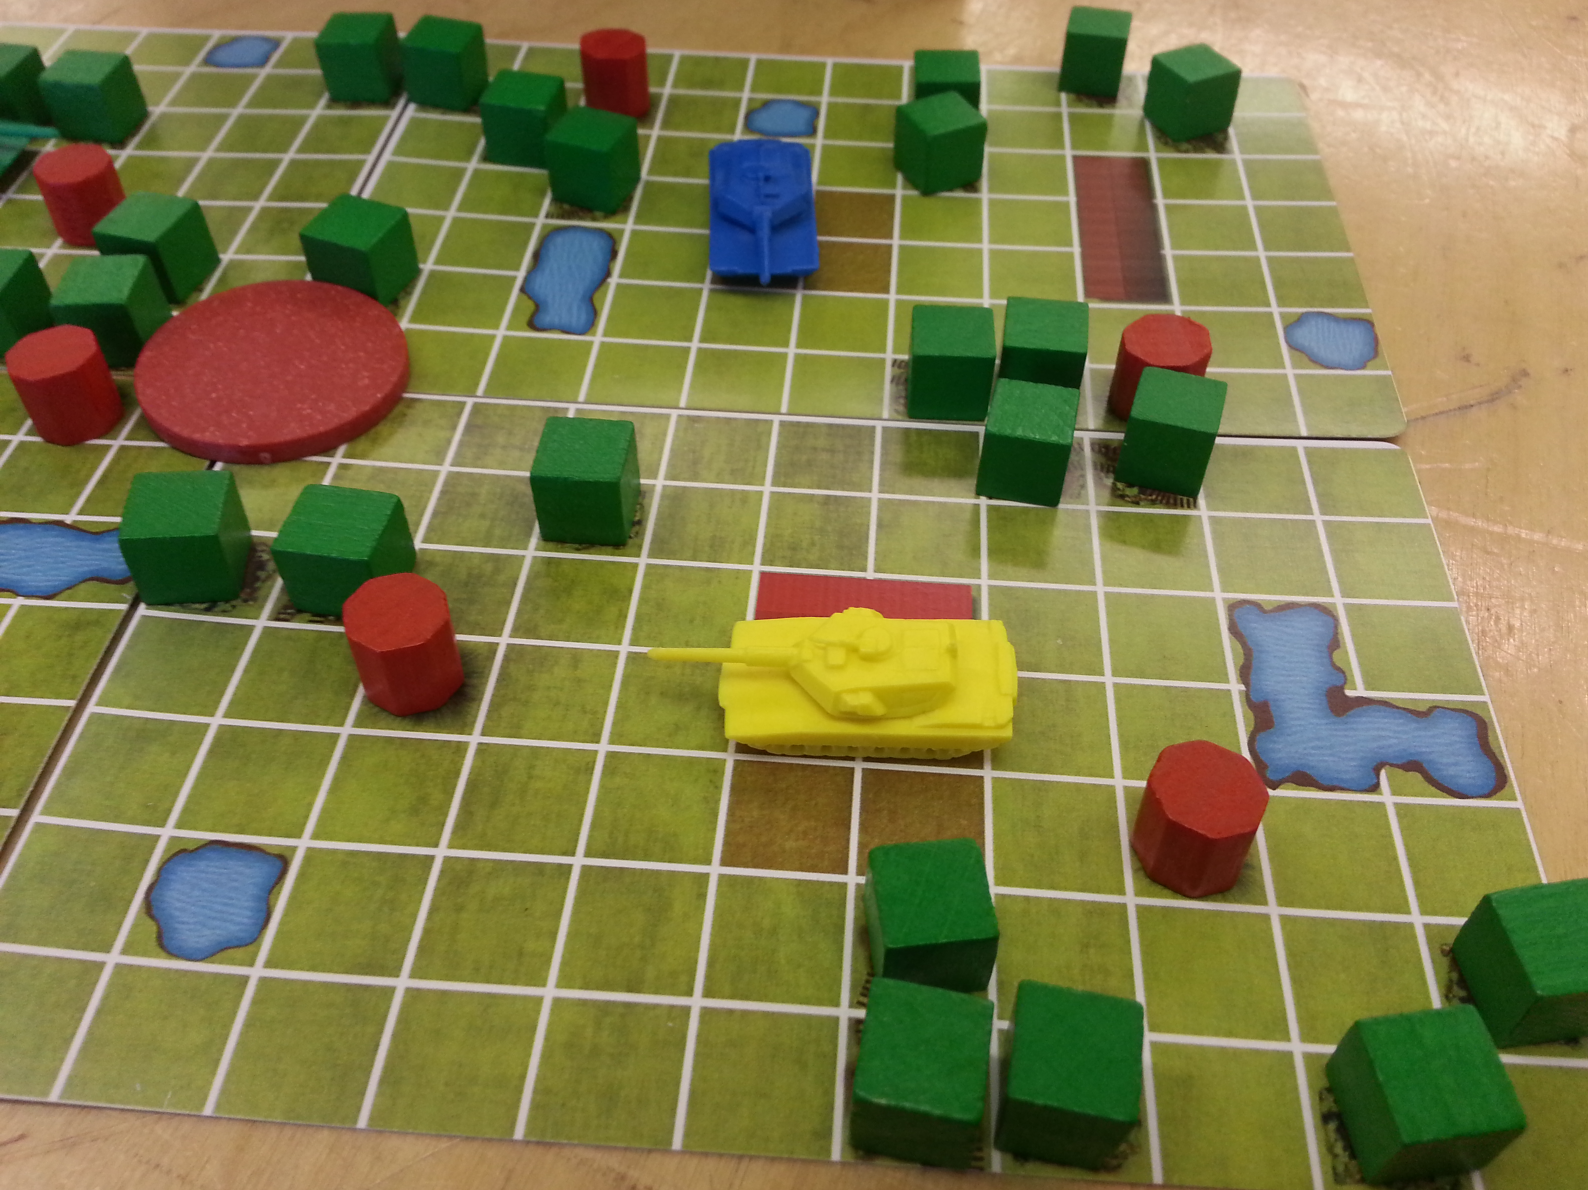 Tuesday Night Tanks is a fast paced, diceless combat game